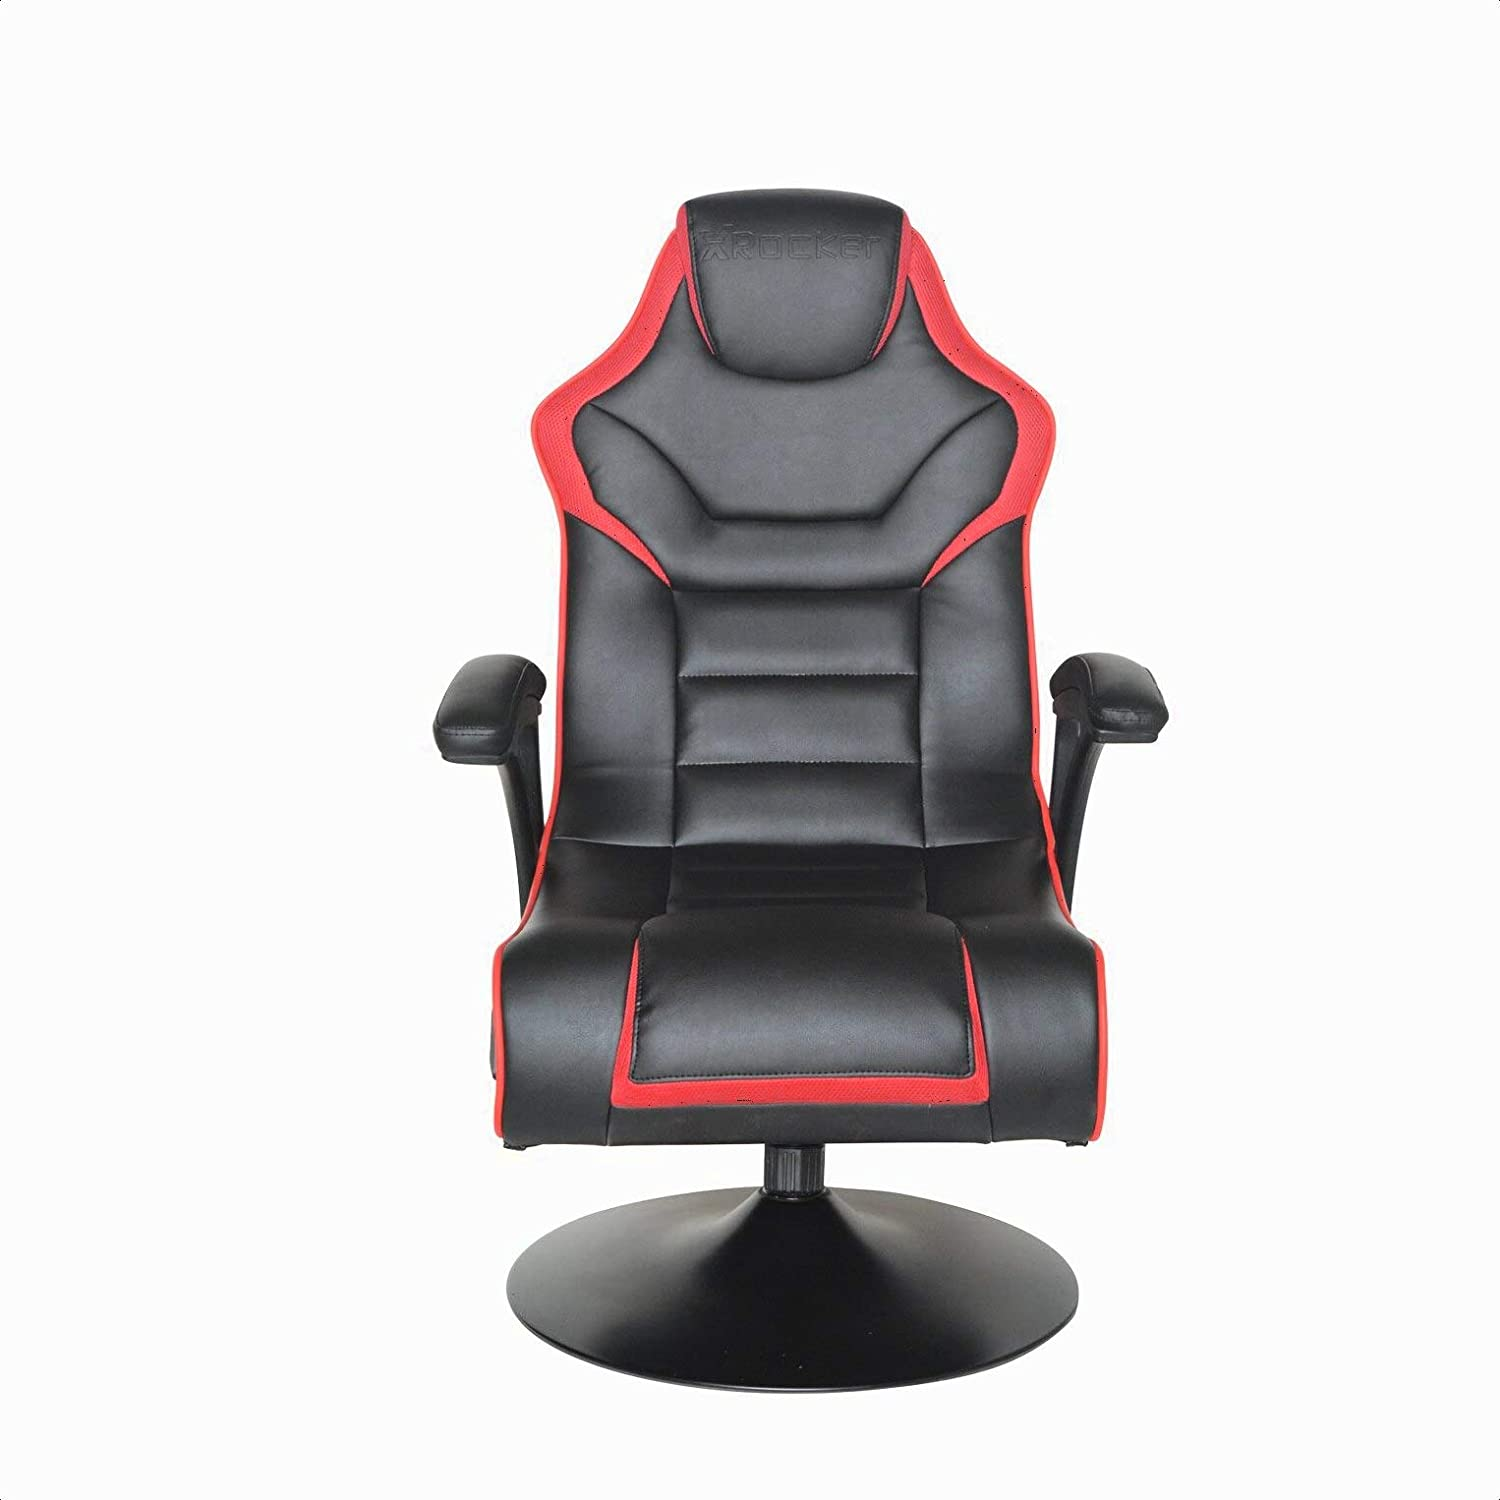 Wireless Gaming OFFicial shop 5 ☆ popular Chair Speakers: Yes Degree Swivel 360